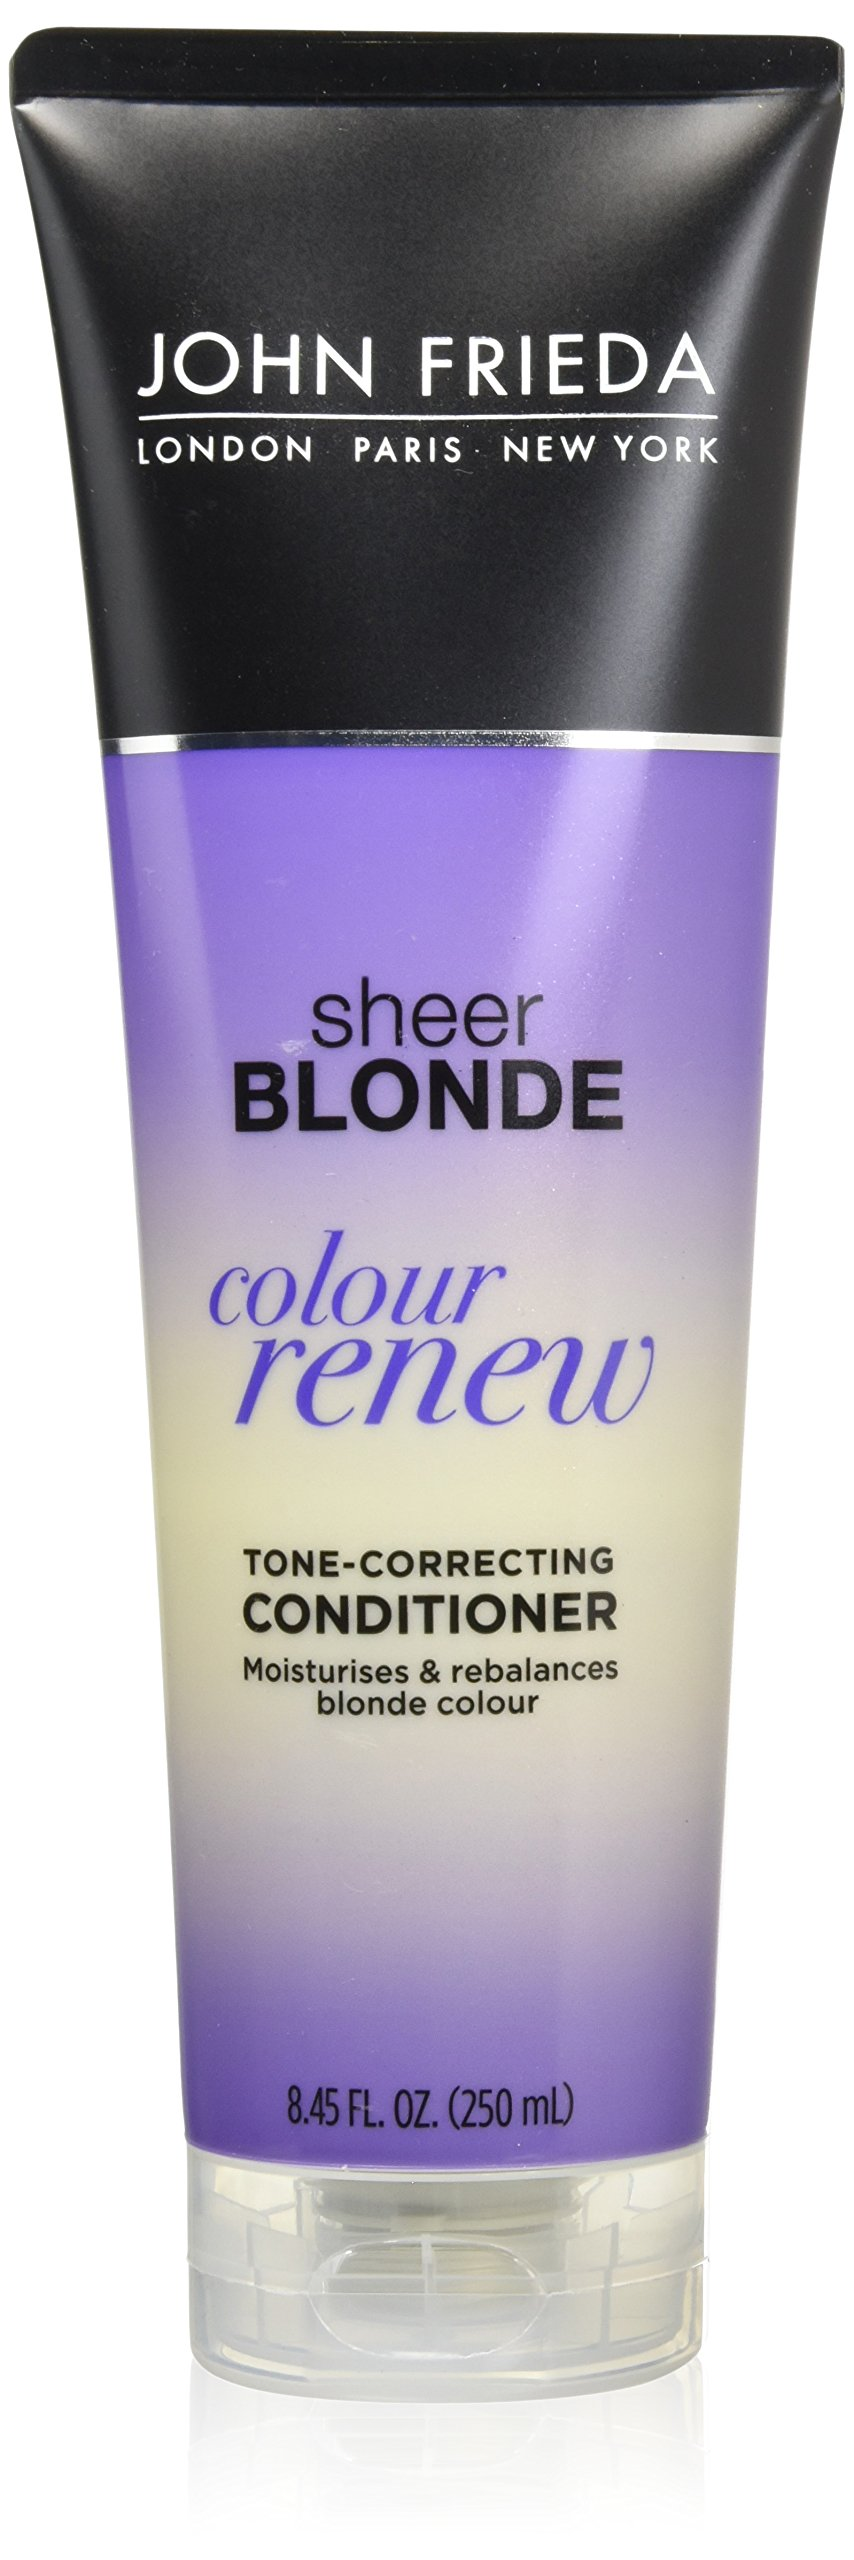 John Frieda Sheer Blonde Colour Renew Tone-Correcting Conditioner, 8.45 Ounces  (Pack of 2)